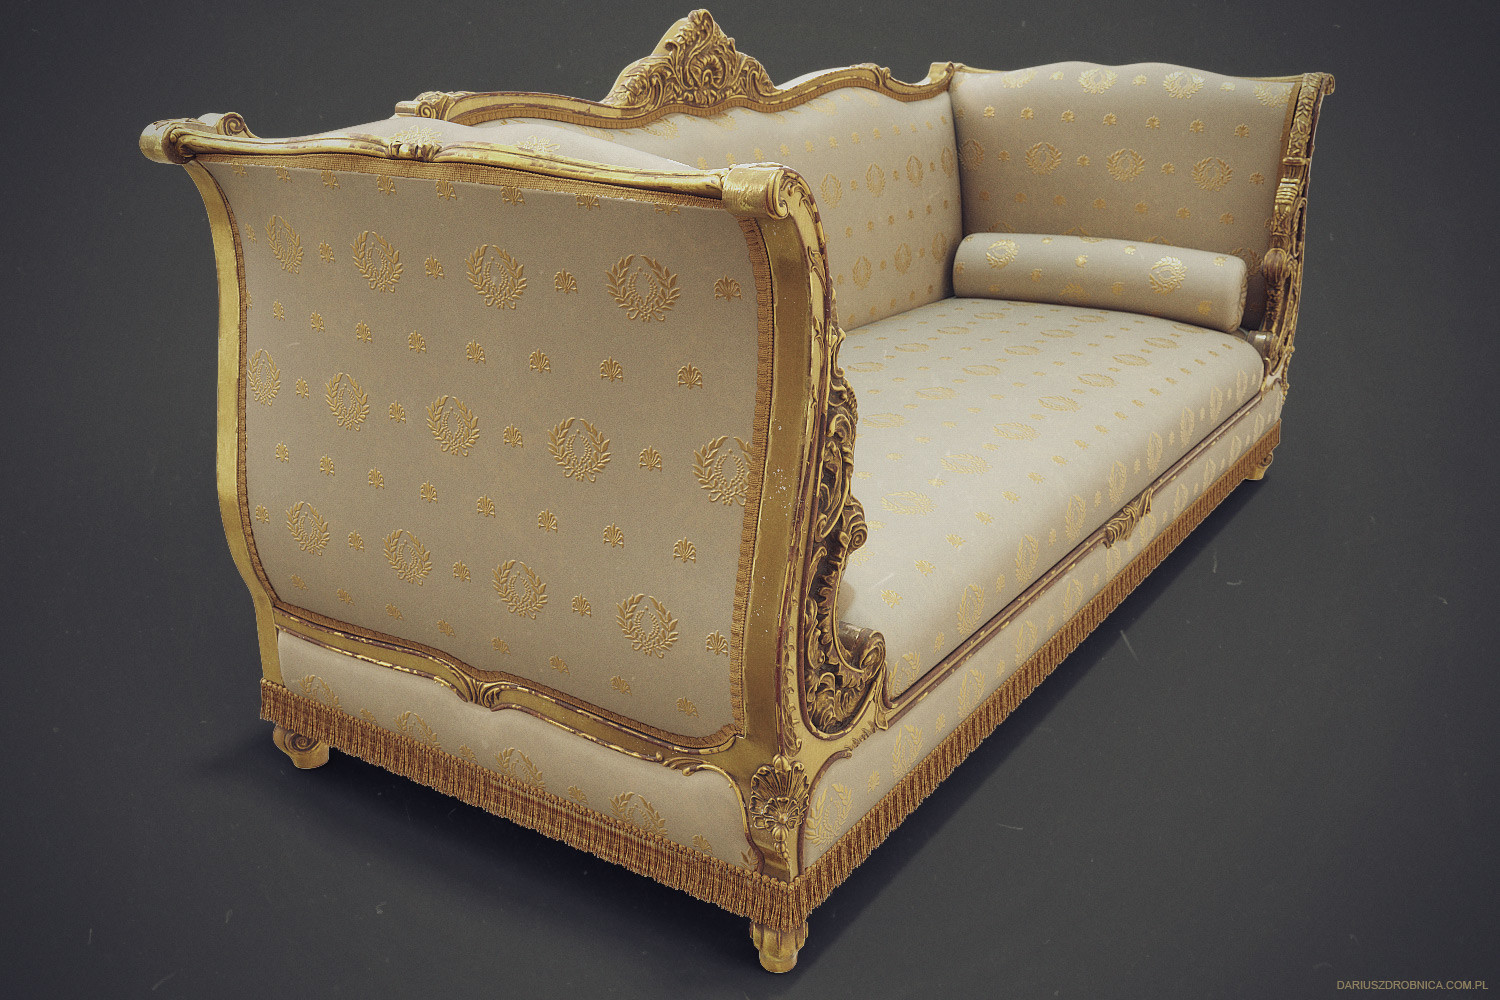 Admirable Dariusz Drobnica The Order 1886 Ornate Sofa Gmtry Best Dining Table And Chair Ideas Images Gmtryco